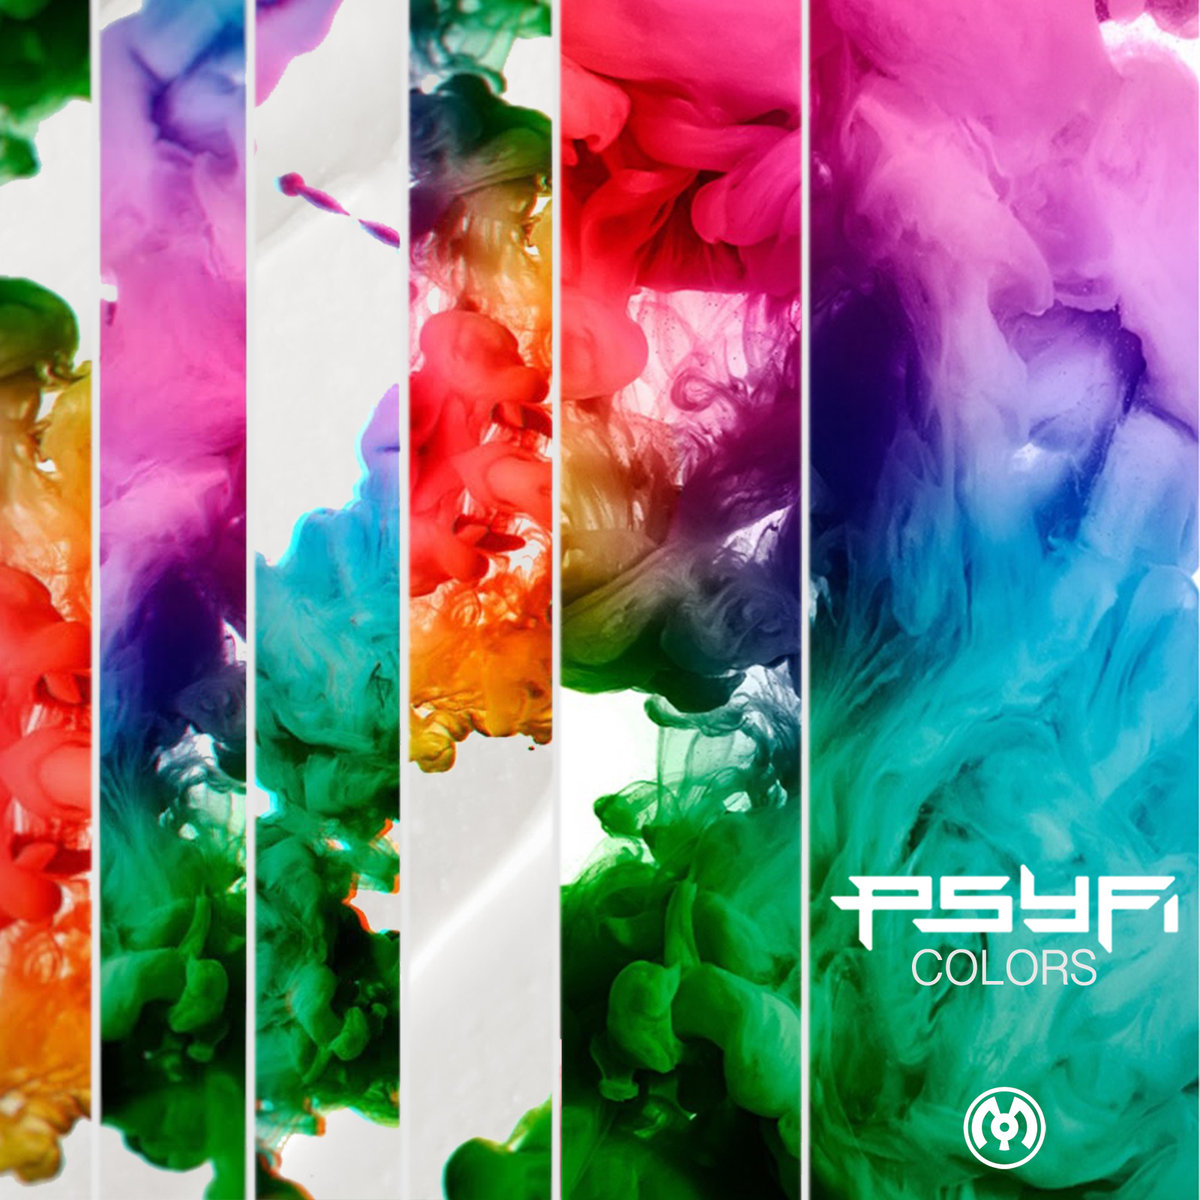 Psy Fi - You Lift Me Up (Wu Wei Remix) @ 'Colors' album (electronic, dubstep)